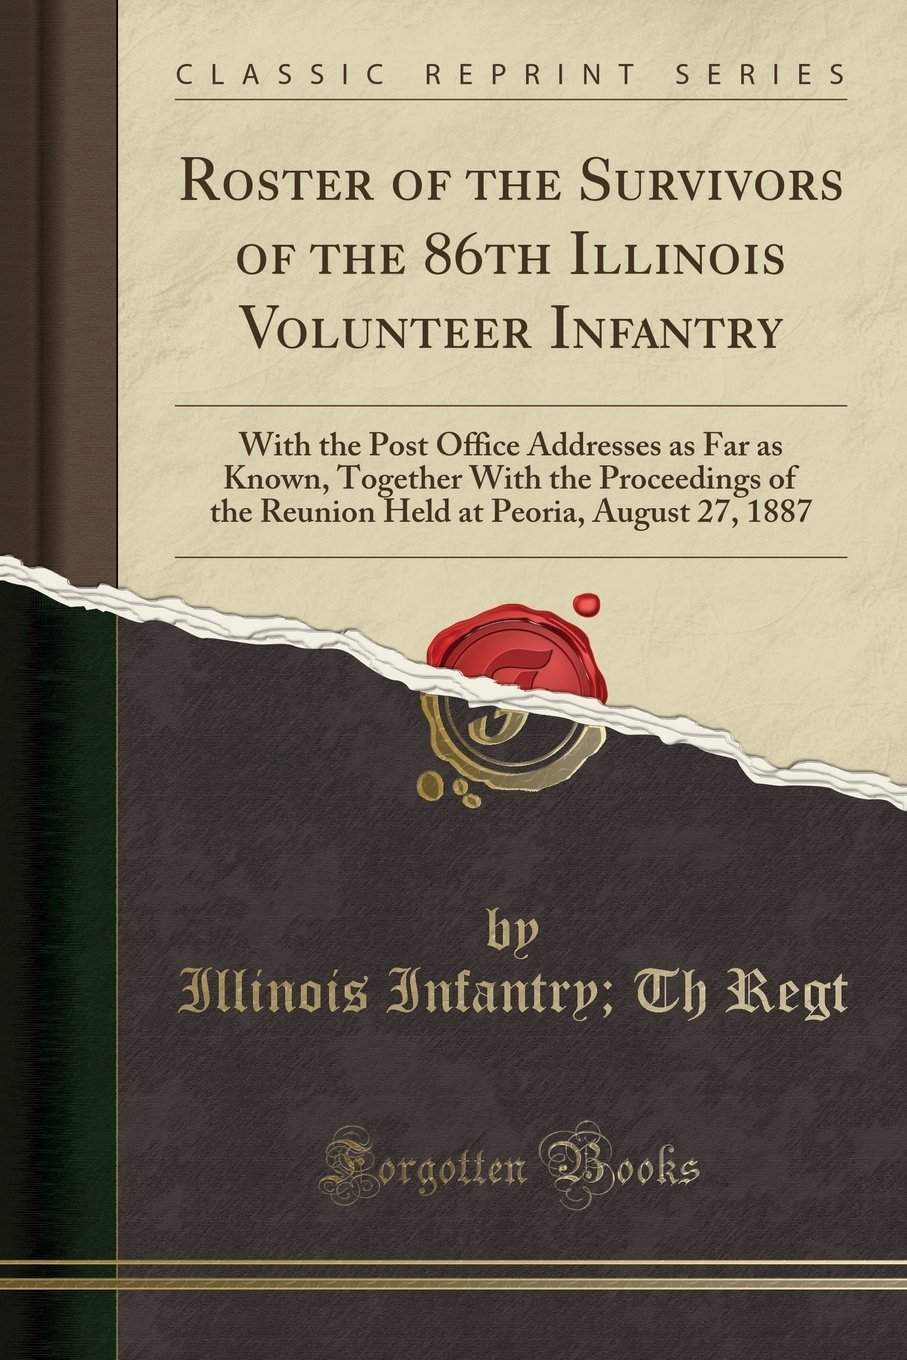 Roster of the Survivors of the 86th Illinois Volunteer Infantry: With the Post Office Addresses as Far as Known, Together With the Proceedings of the at Peoria, August 27, 1887 (Classic Reprint) pdf epub